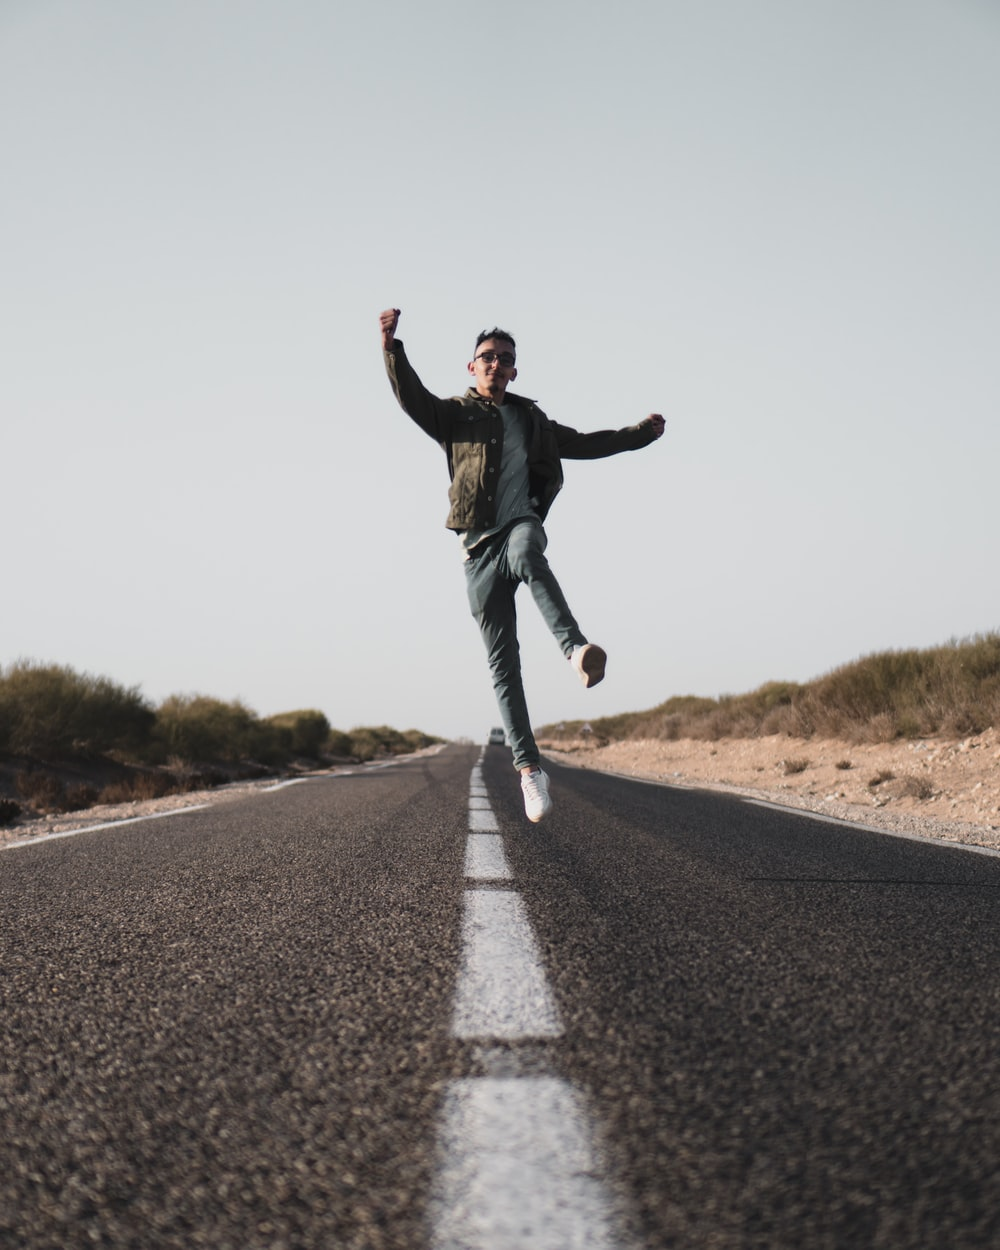 man wearing gray jacket jumping in the middle of asphalt road